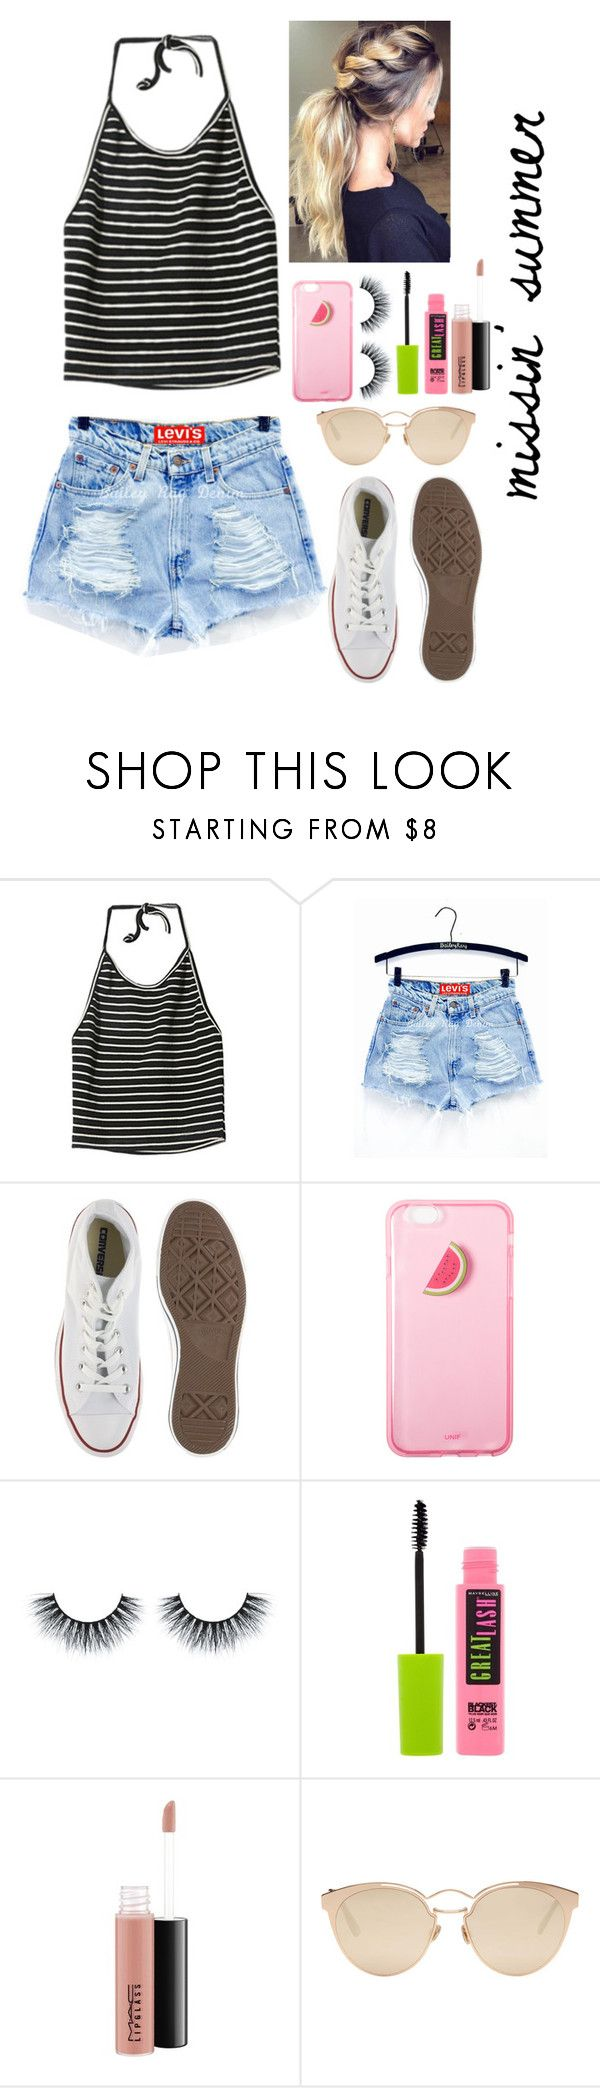 """""""Missing summertime"""" by gussied-up ❤ liked on Polyvore featuring StyleNanda, ASOS Curve, Maybelline, MAC Cosmetics and Christian Dior"""